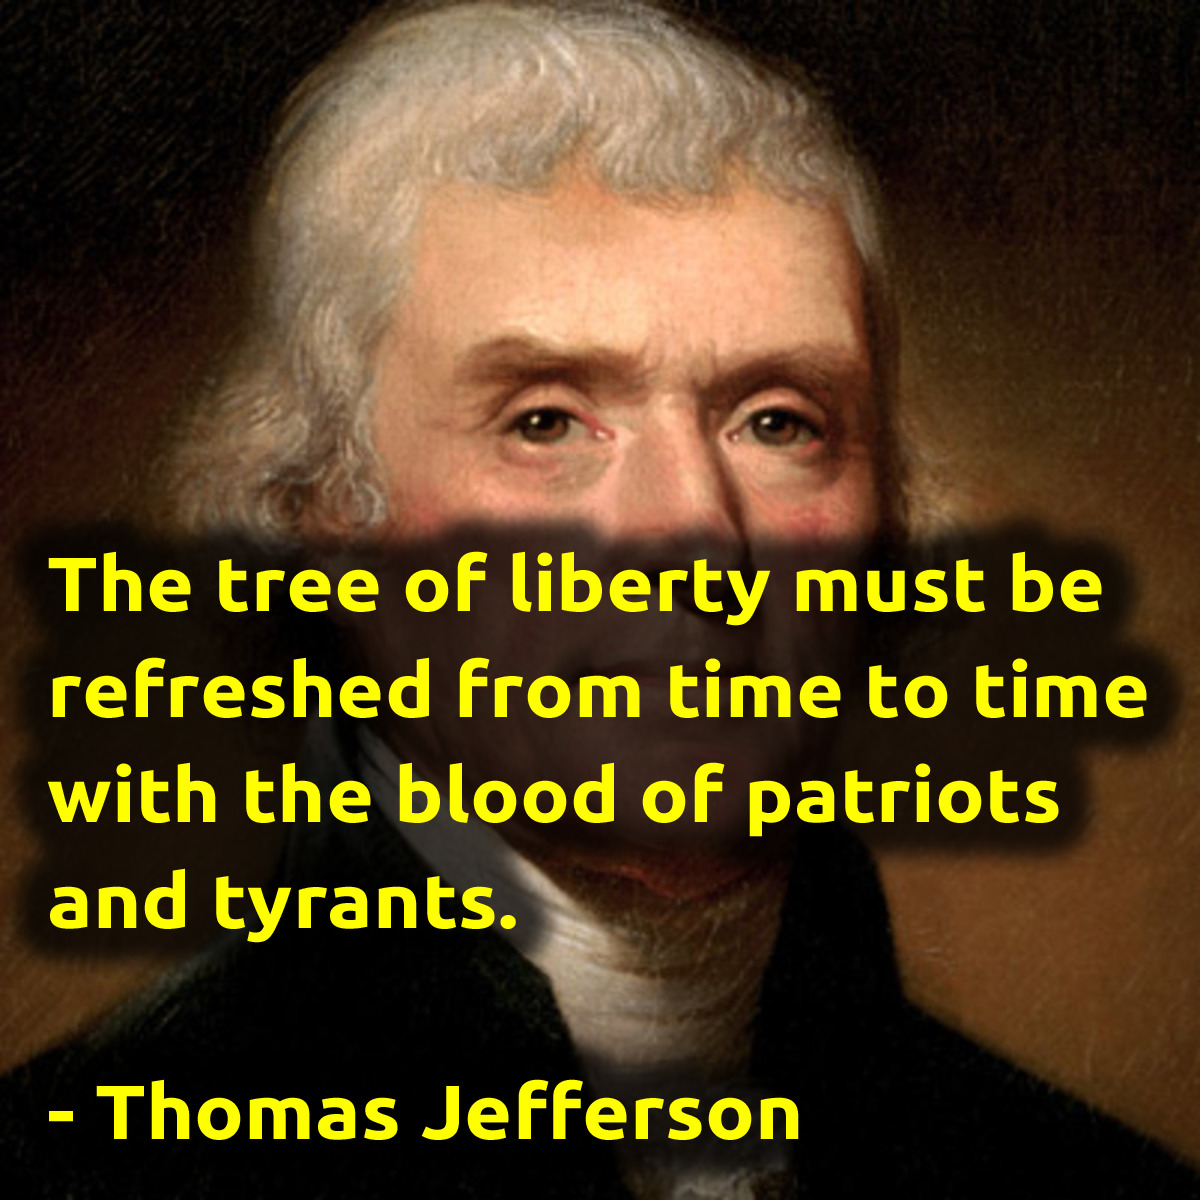 """The tree of liberty must be refreshed from time to time with the blood of patriots and tyrants."" – Thomas Jefferson [1200×1200]"